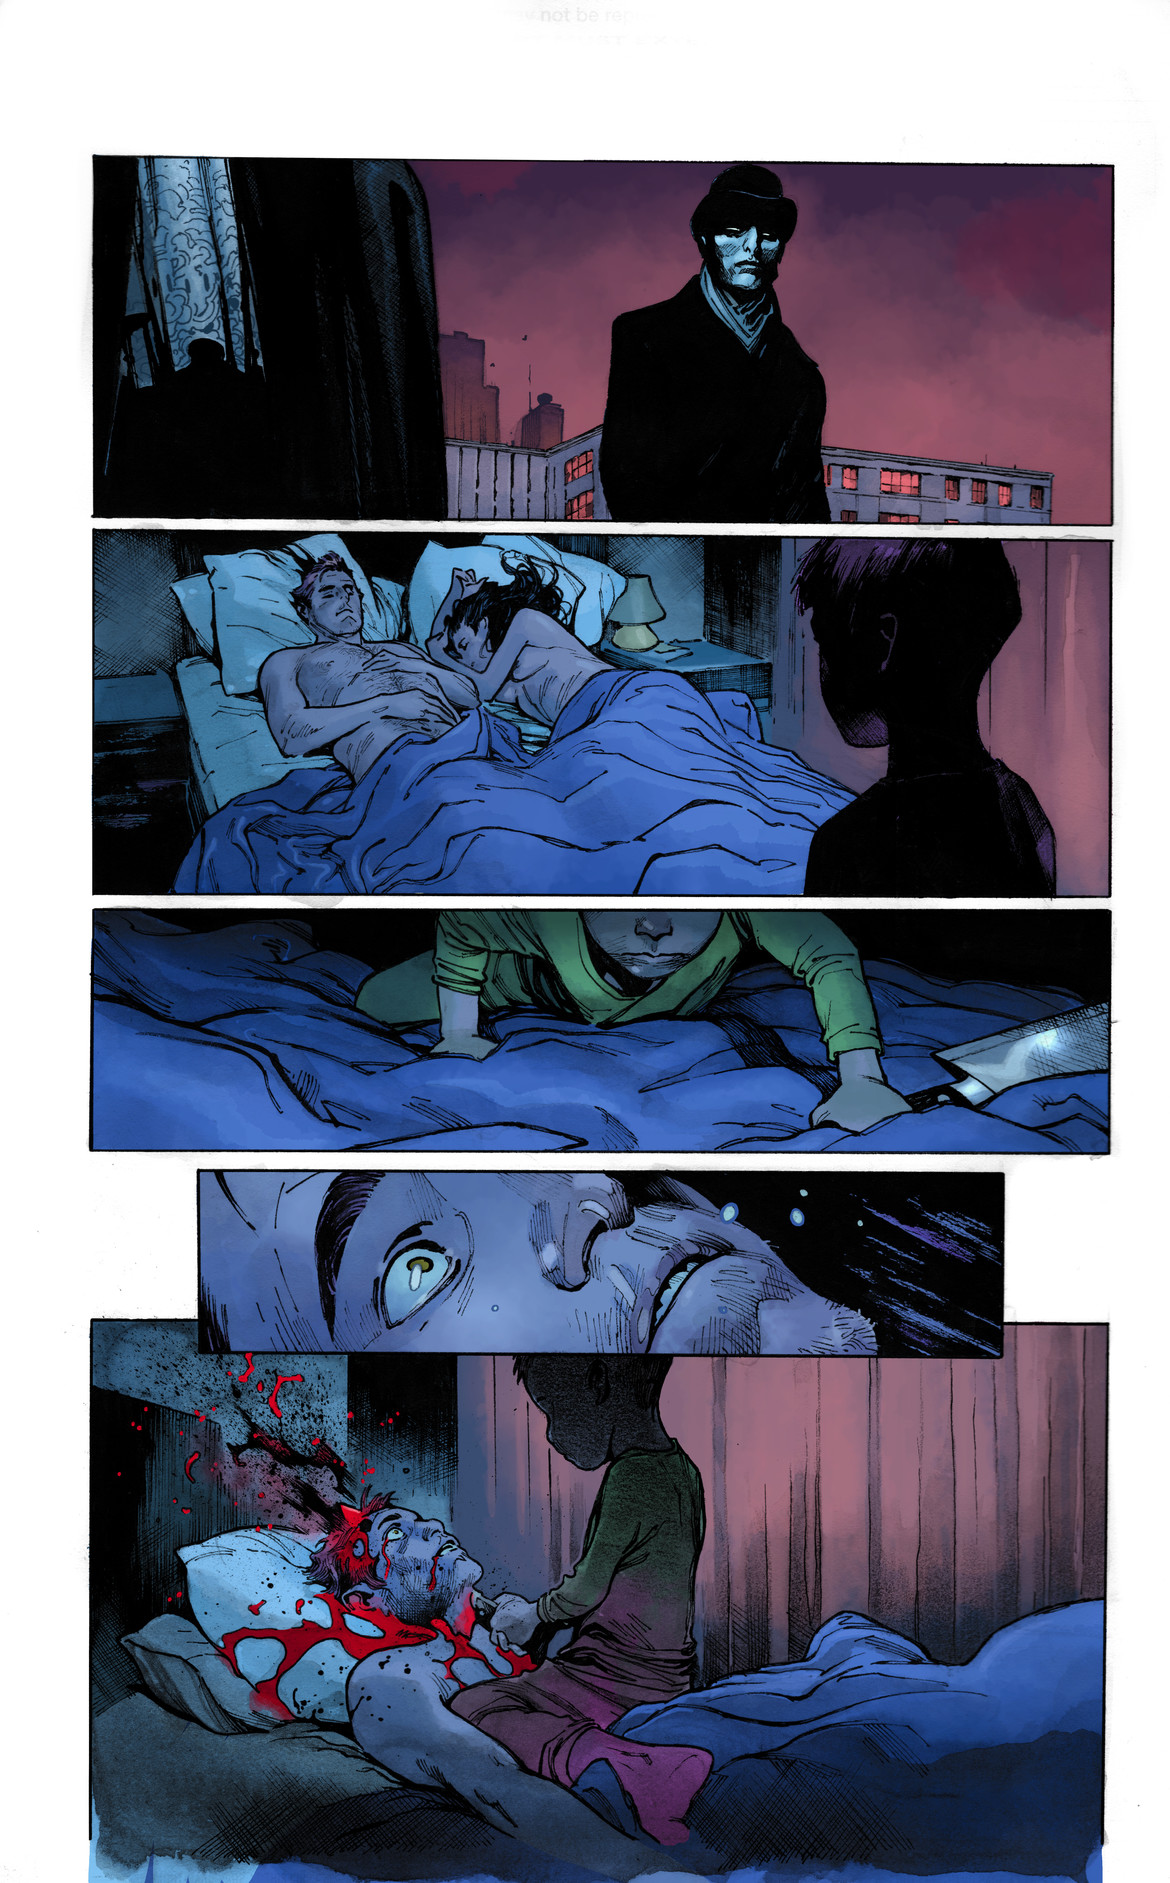 From The Magic Order by Mark Millar and Olivier Coipel